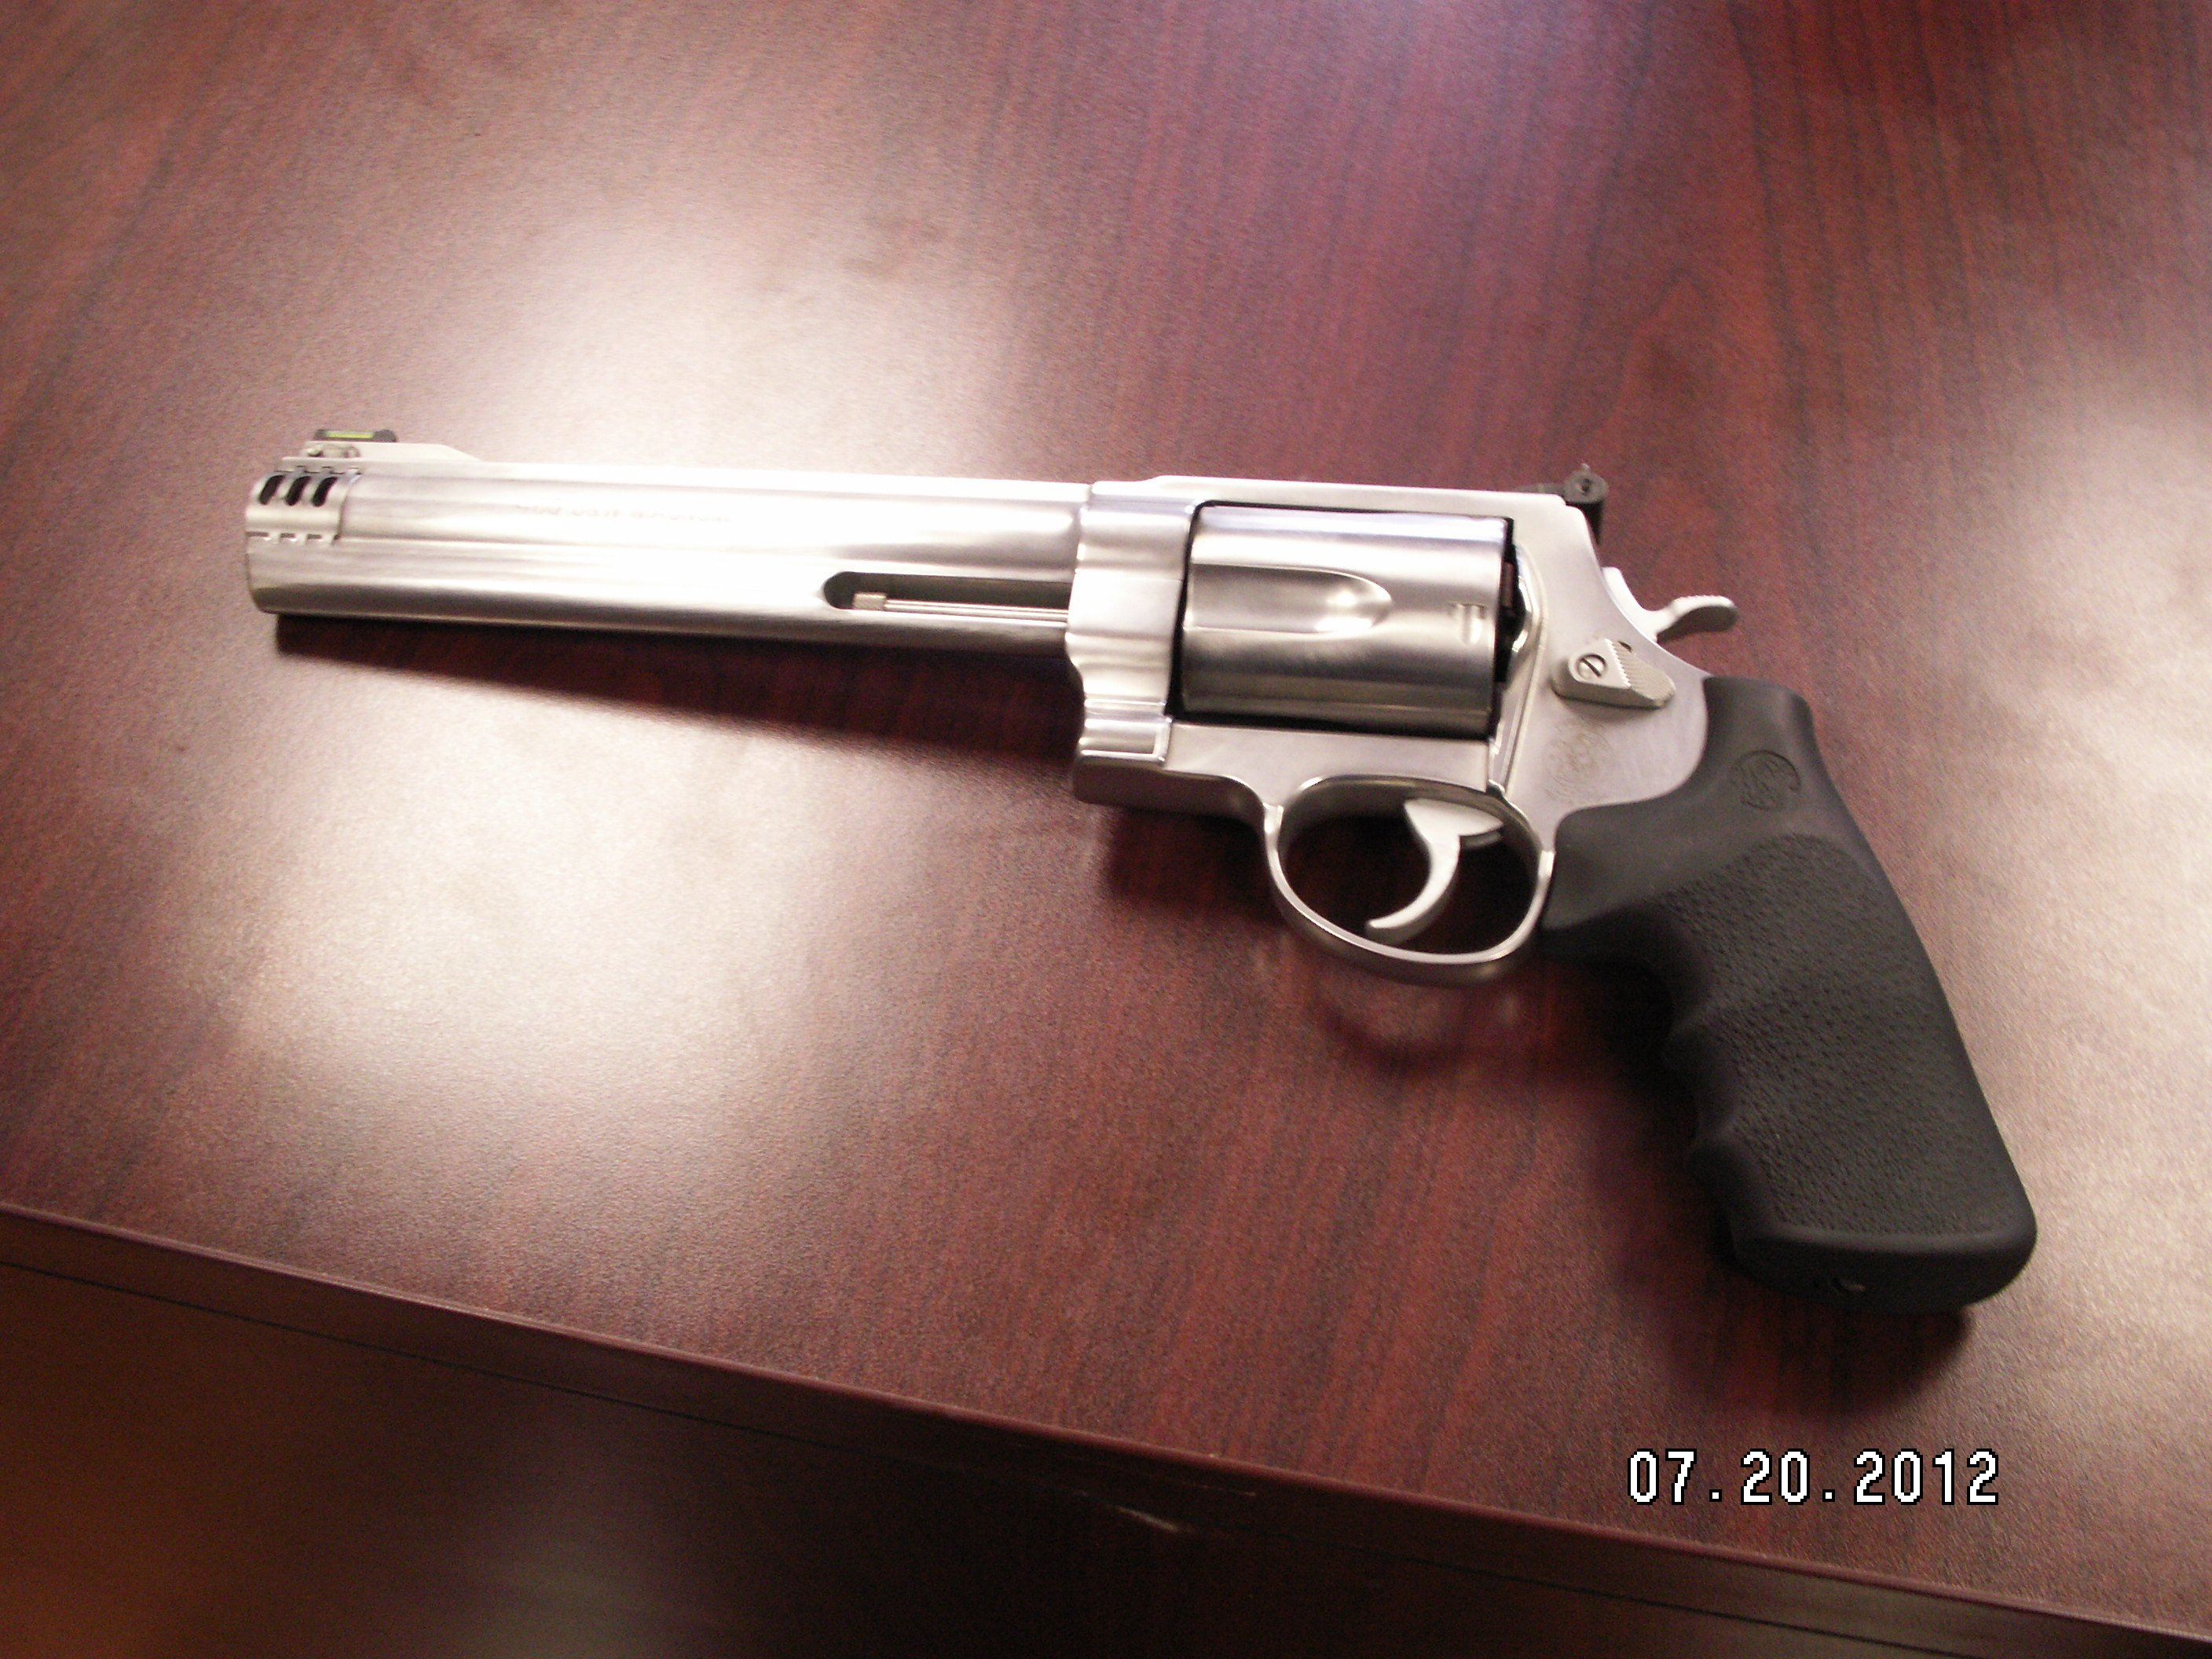 Handgun allegedly brandished; photo courtesy Sheriff's Office